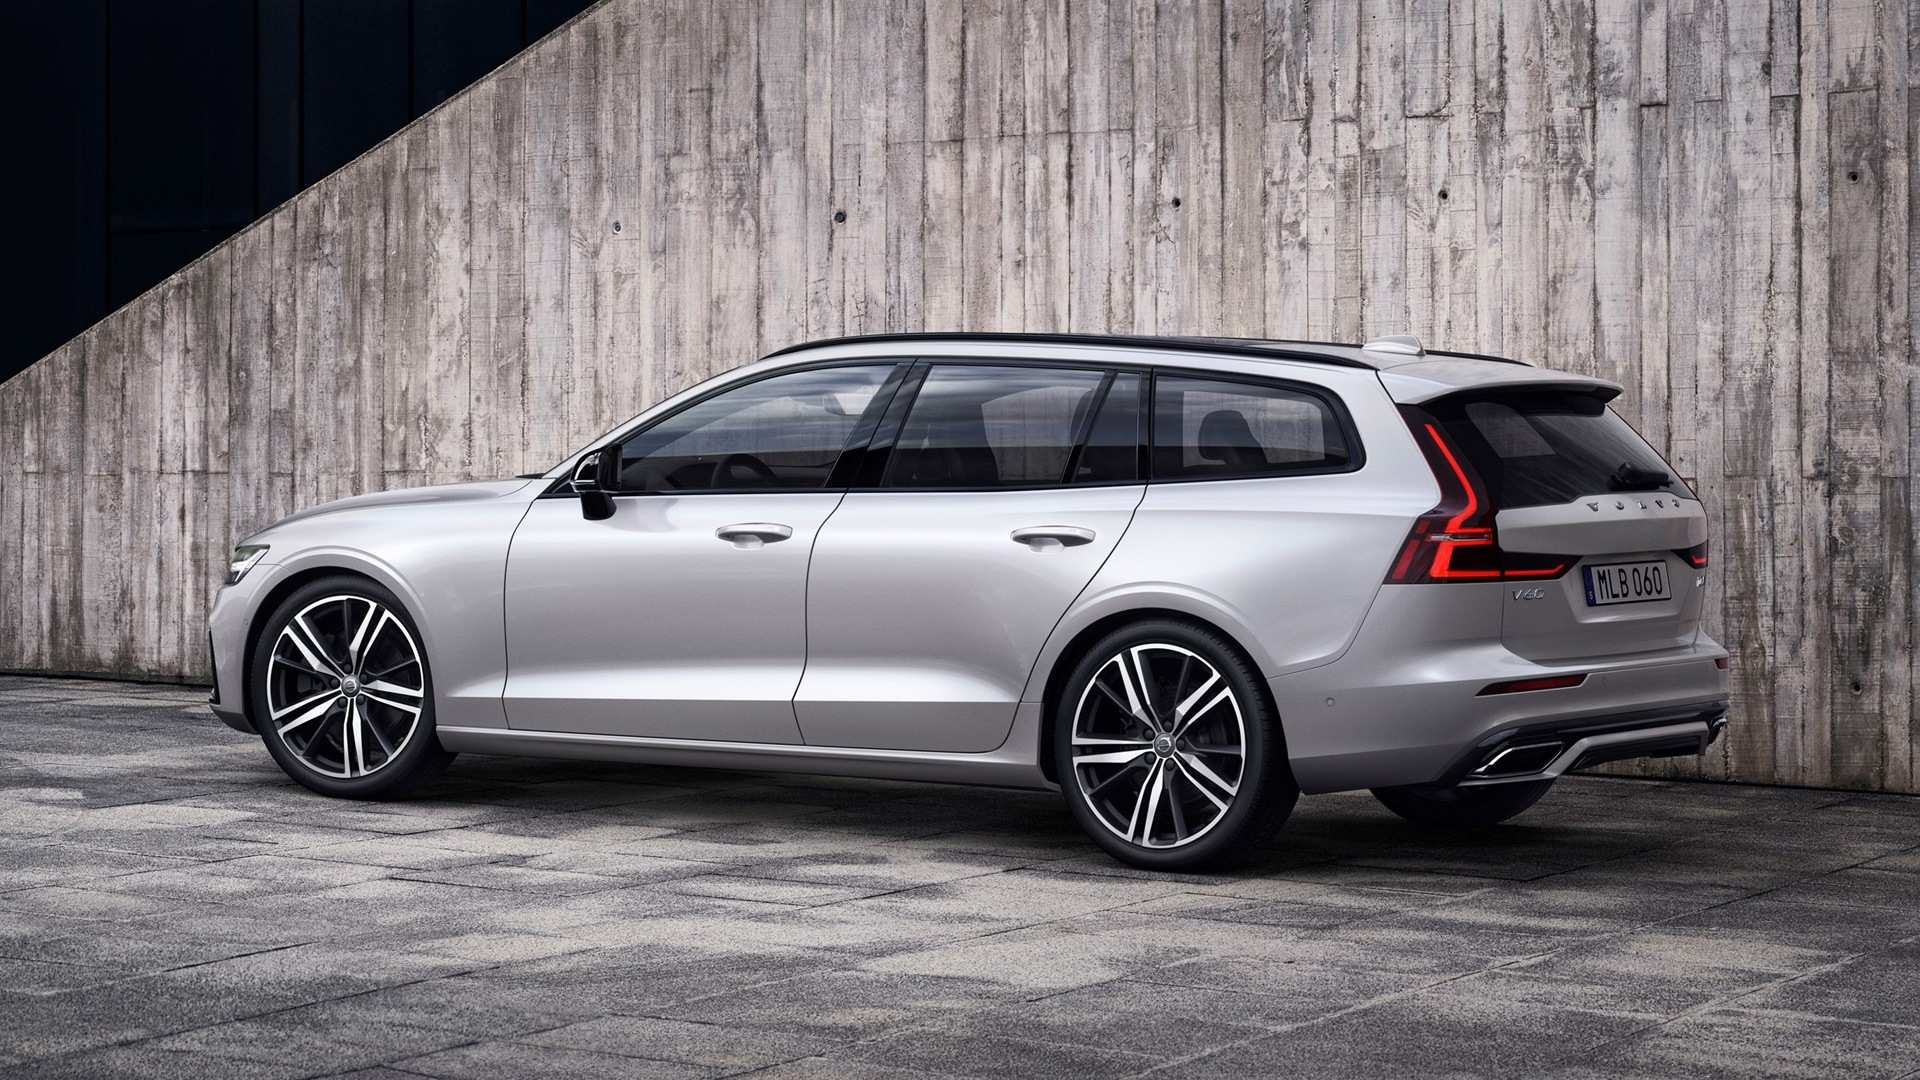 58 The Best 2019 Volvo S60 R Exterior